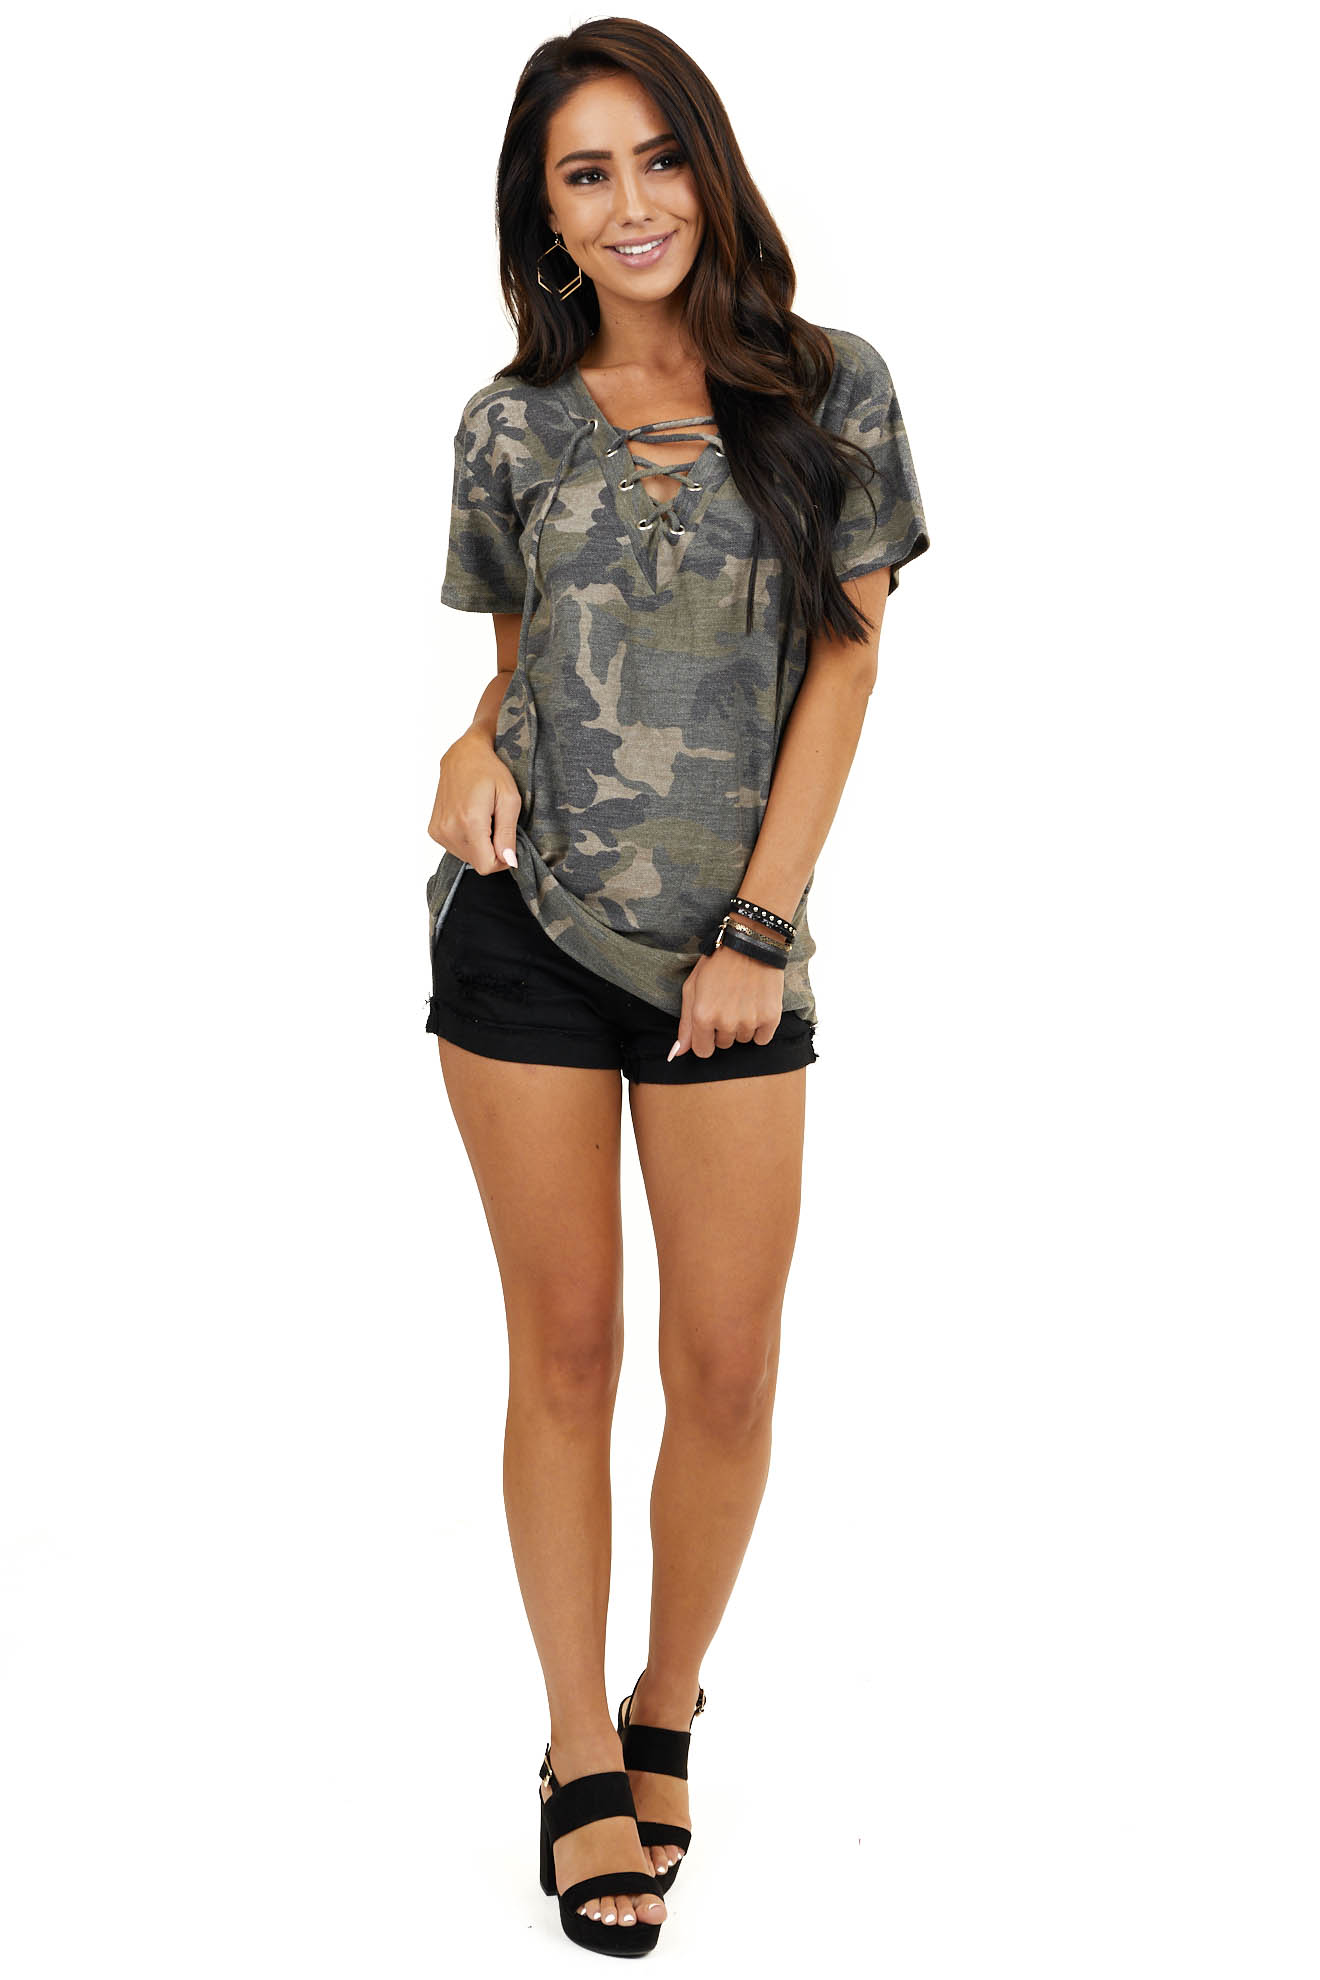 Olive Camo Print Laced Up V Neck Top with Short Sleeves